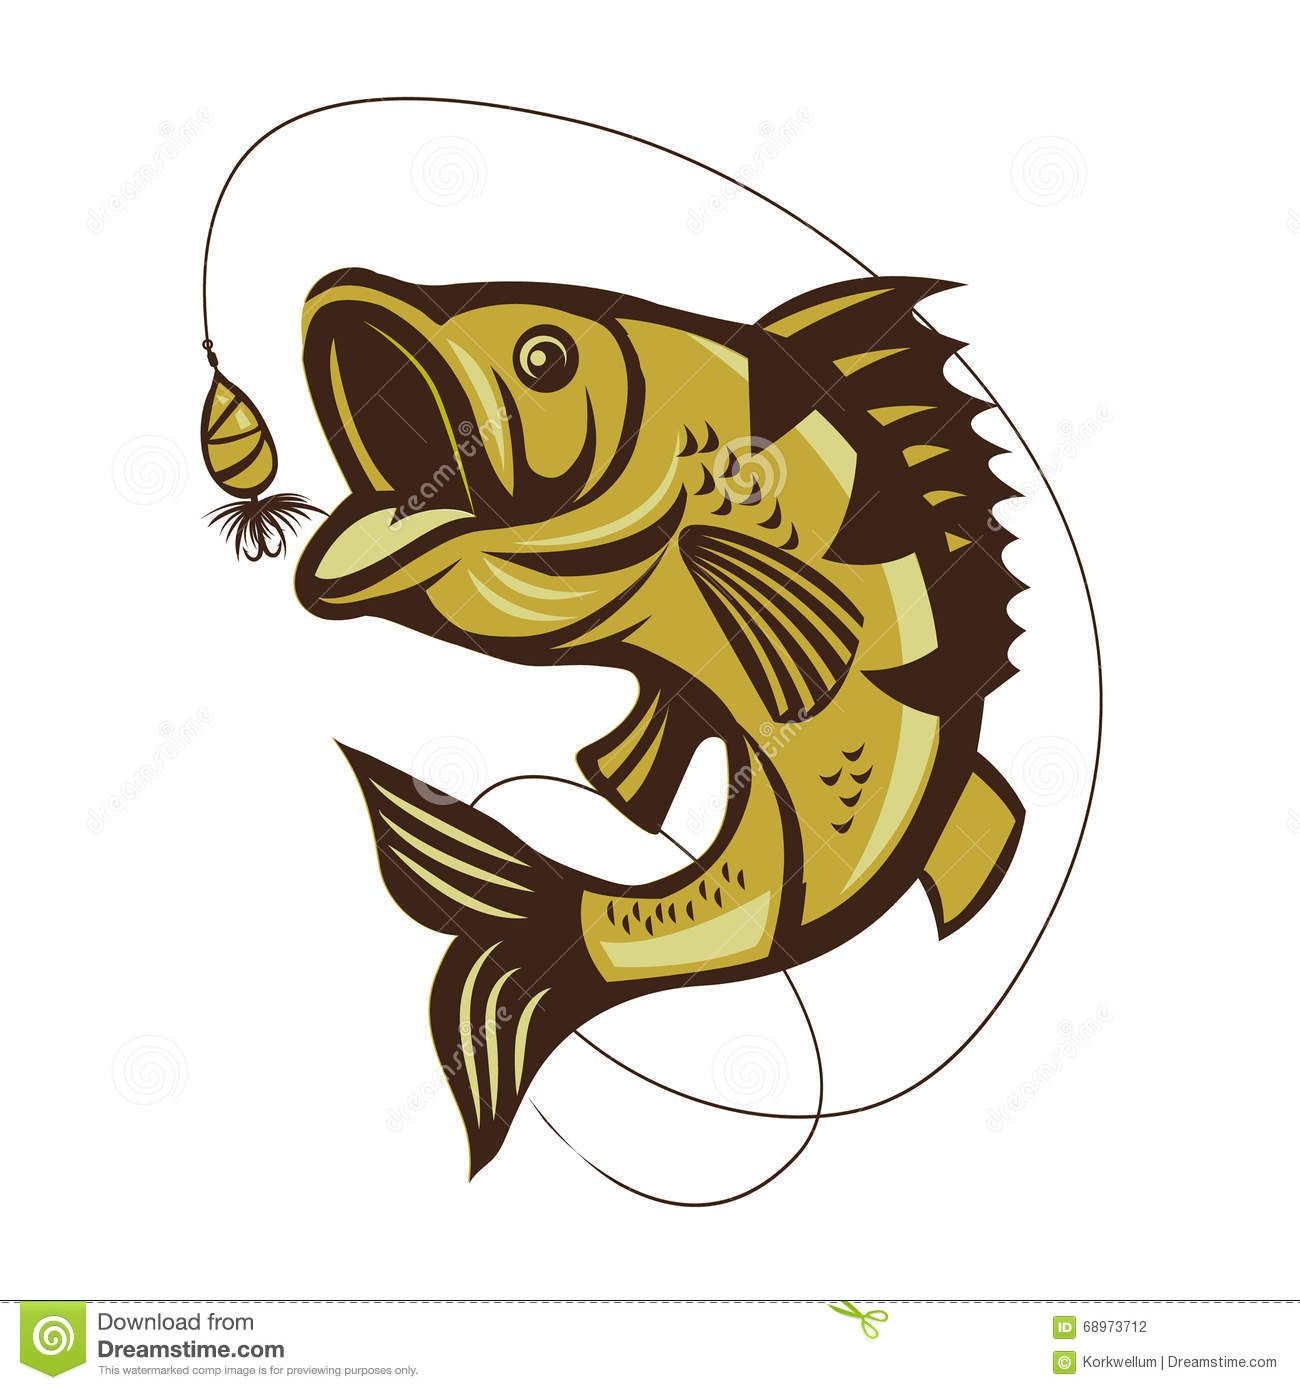 Download Catching Bass Fish Fish Color Vector Fish Graphic